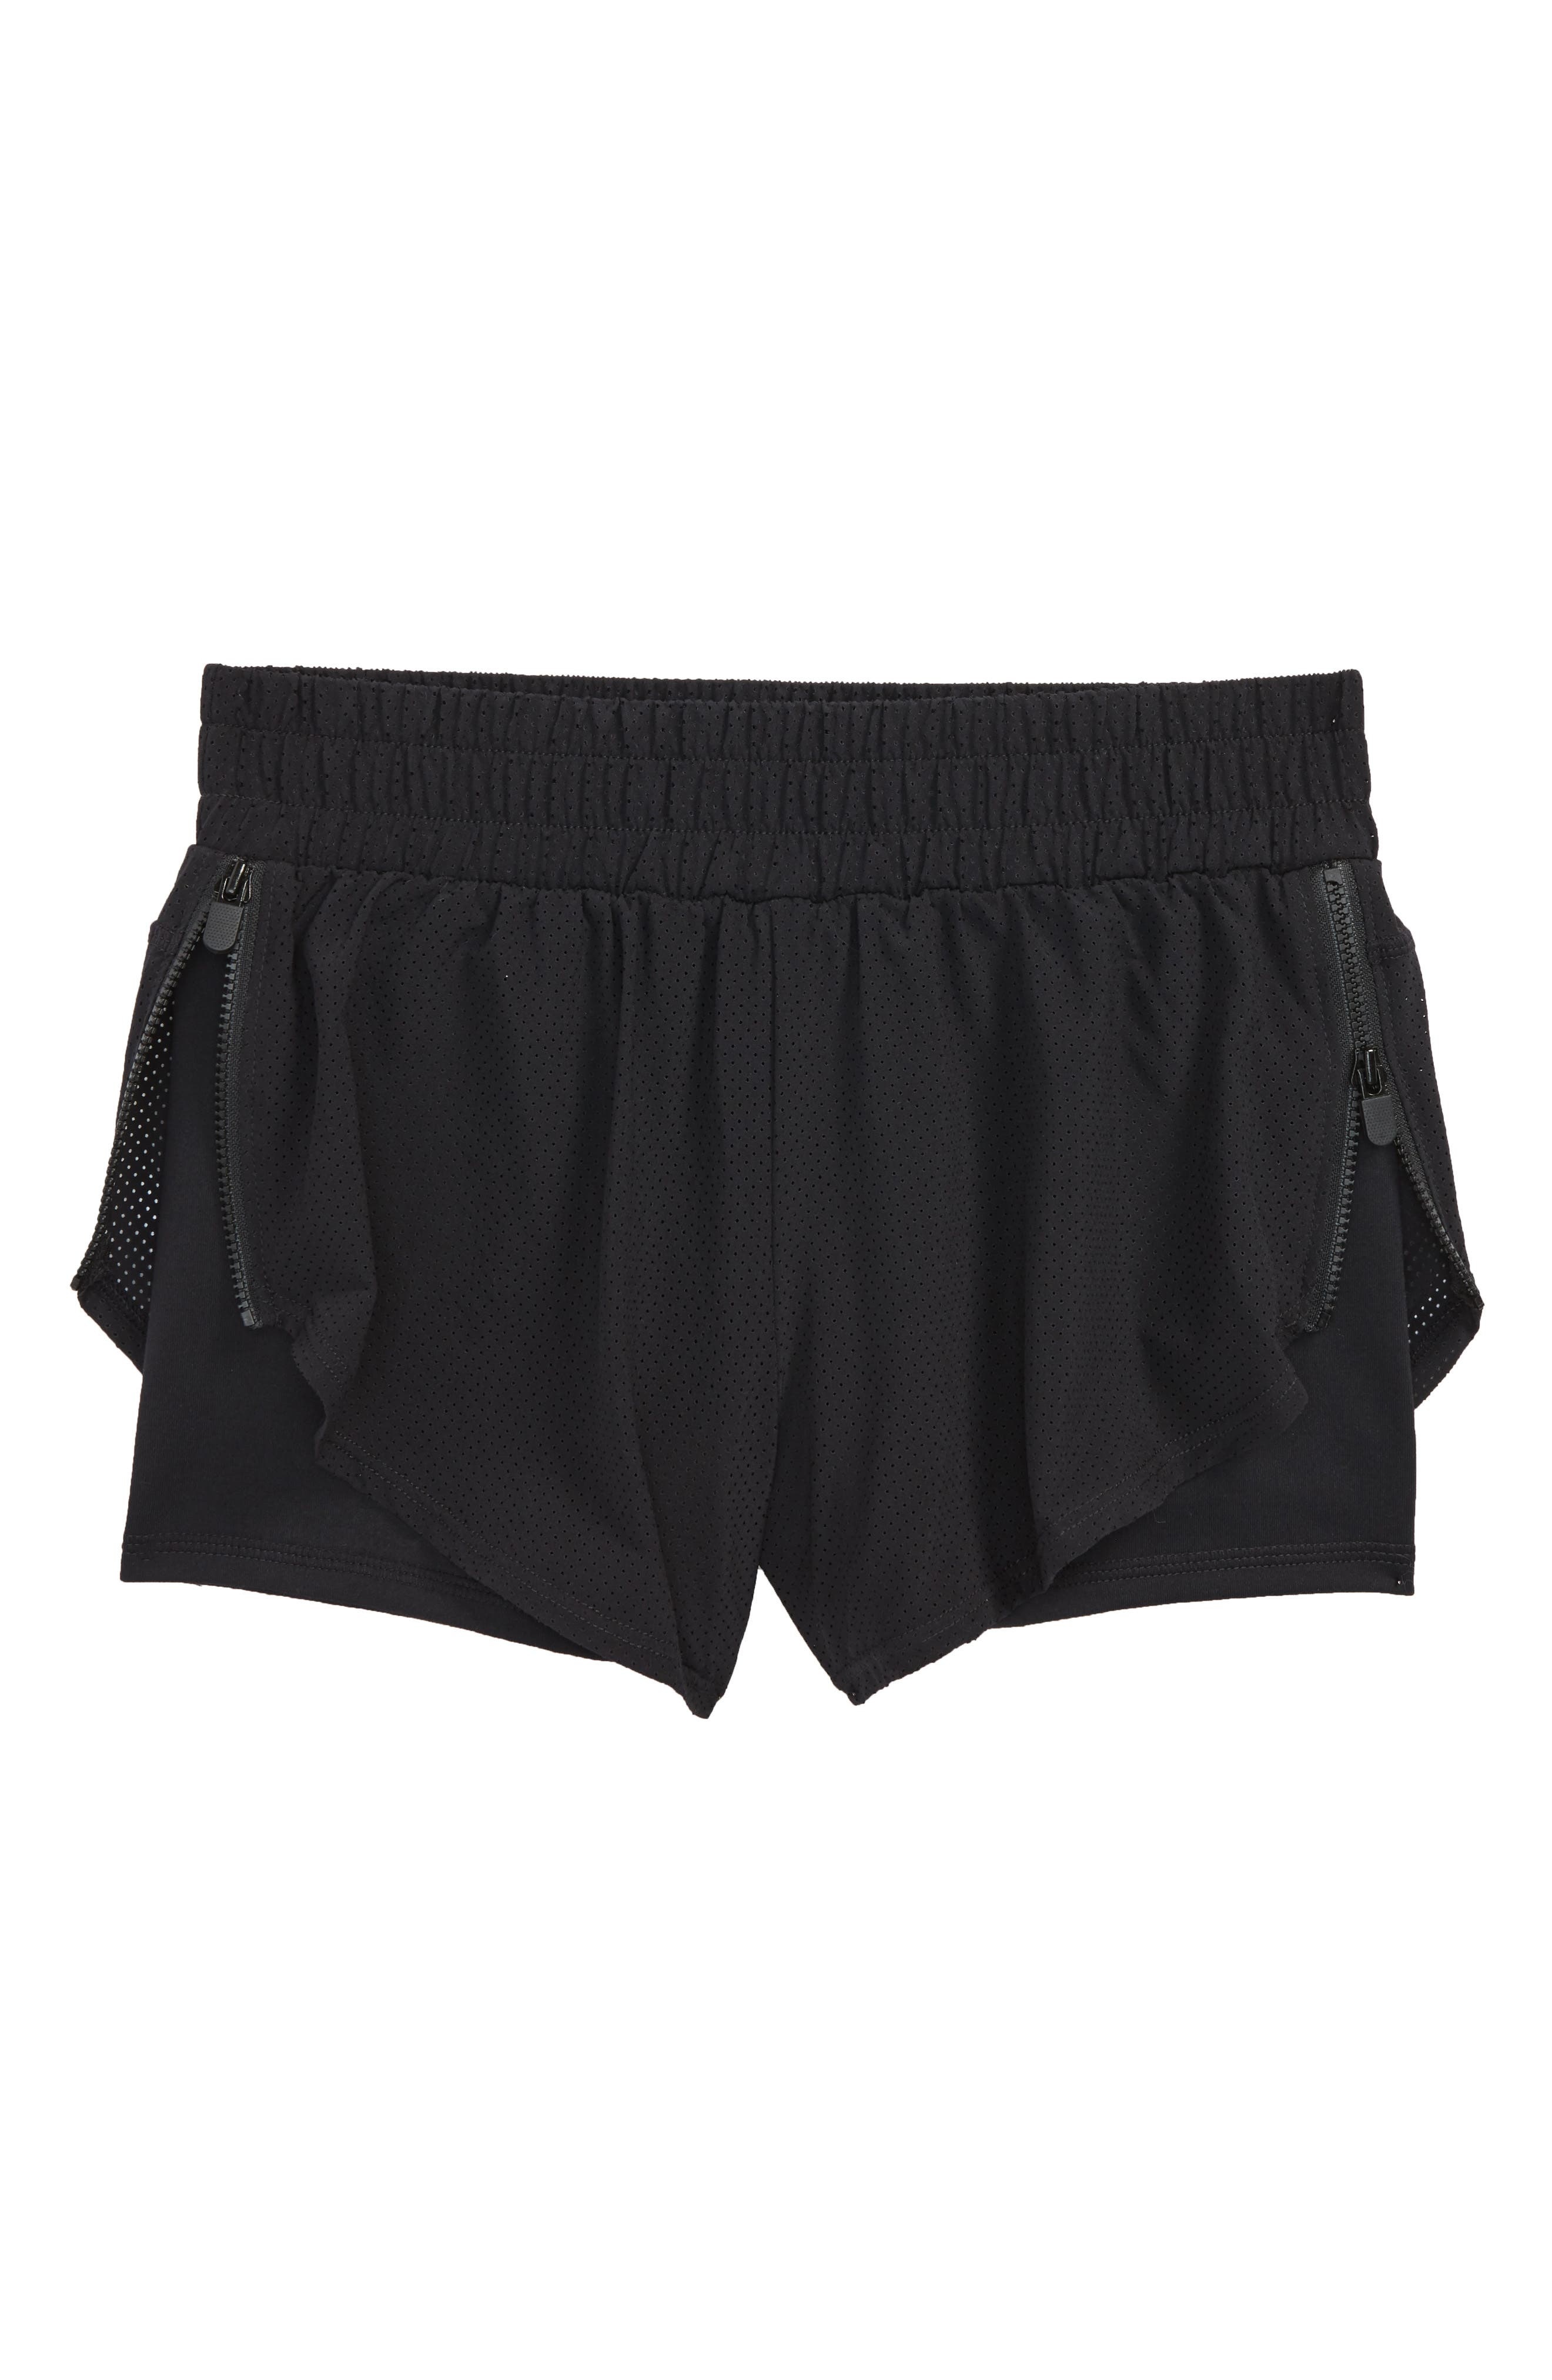 Double Layer Shorts,                         Main,                         color, 001